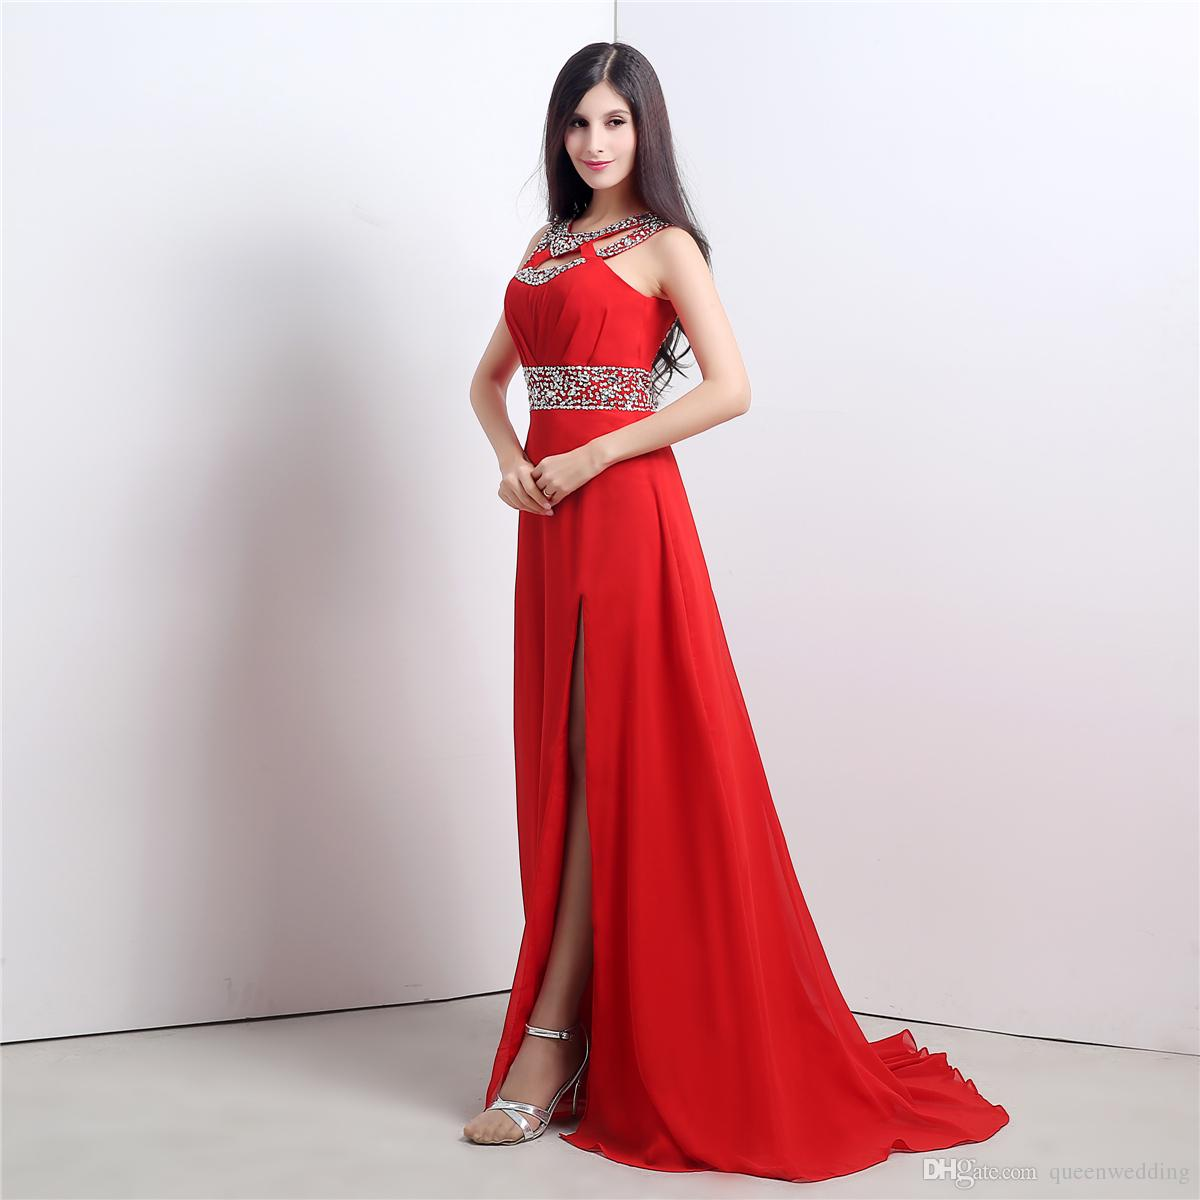 Long Red Gown